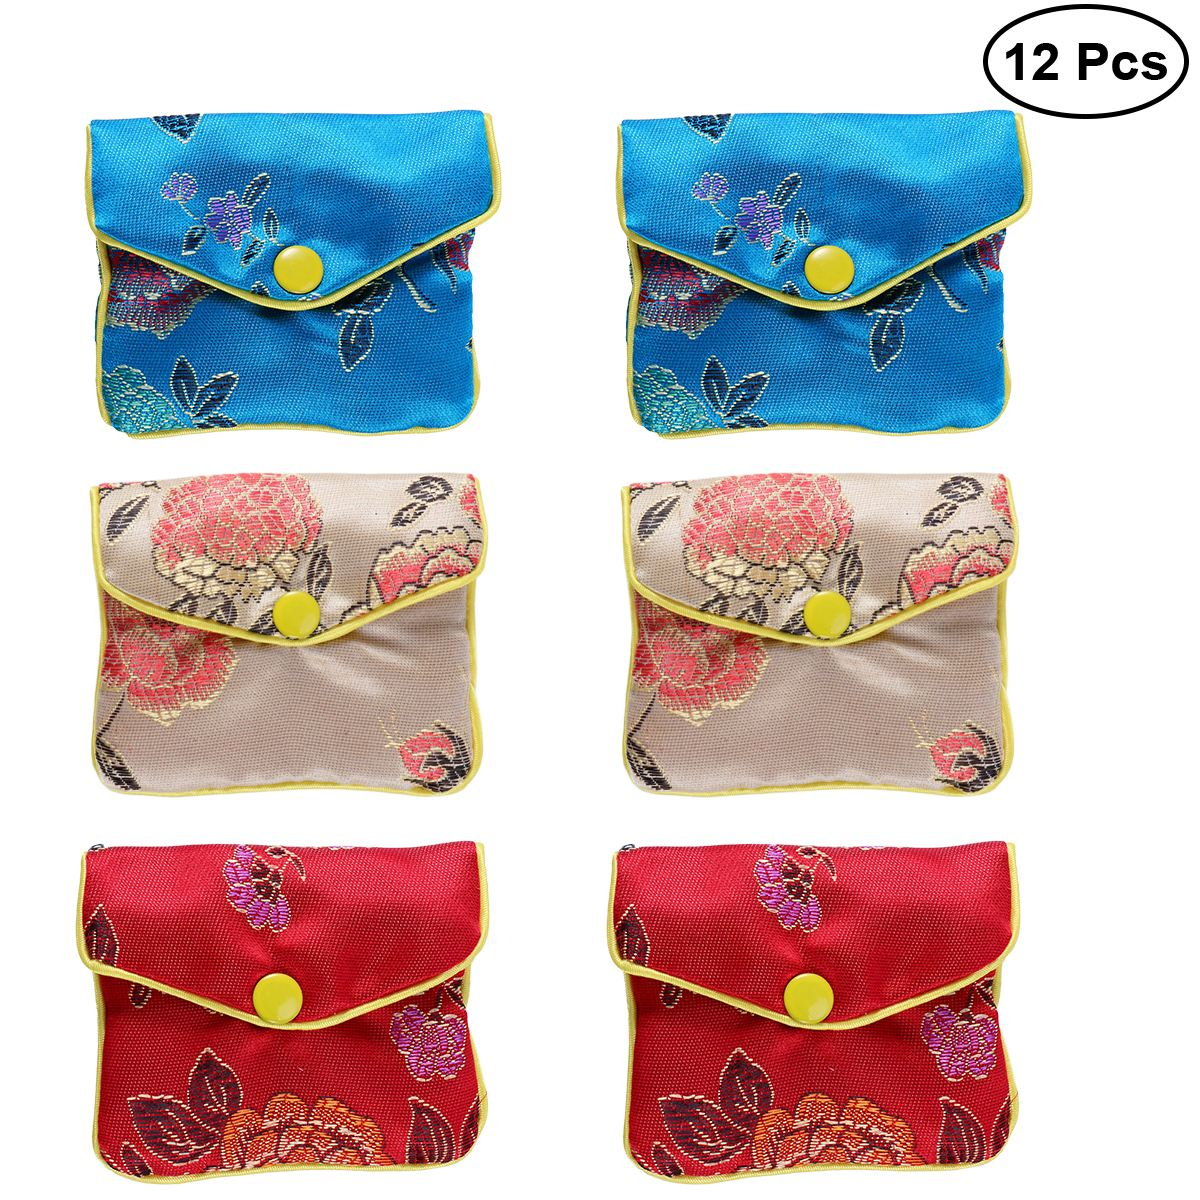 12pcs Gift Wrap Storage Chinese Traditional Brocade Pouch Coin Purse Embroidery Pouch Jewelry Bag